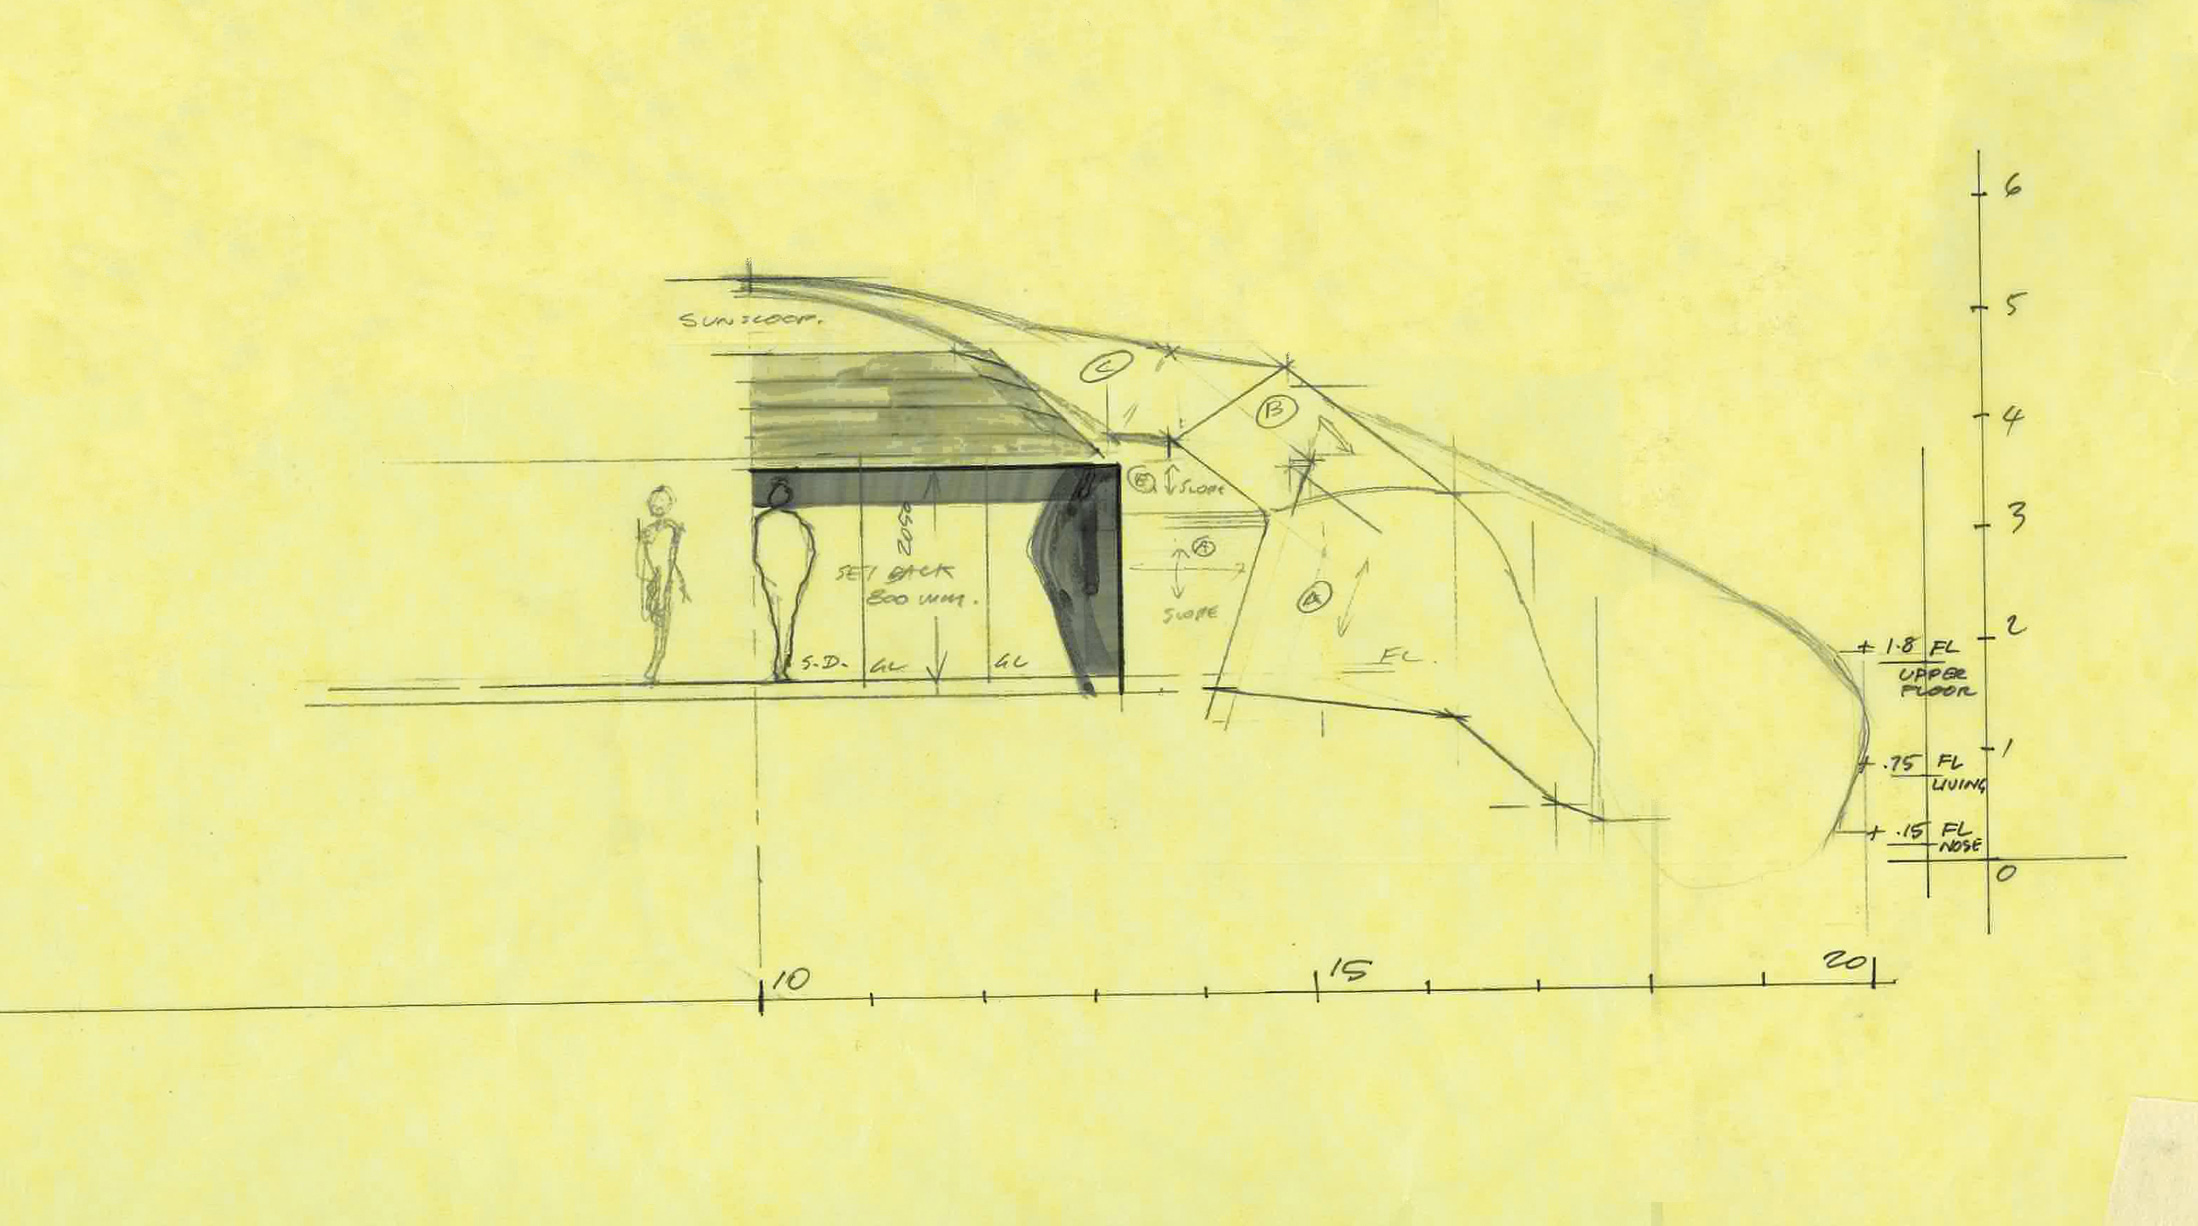 Blowhouse by Paul Morgan Architects - sectional sketch